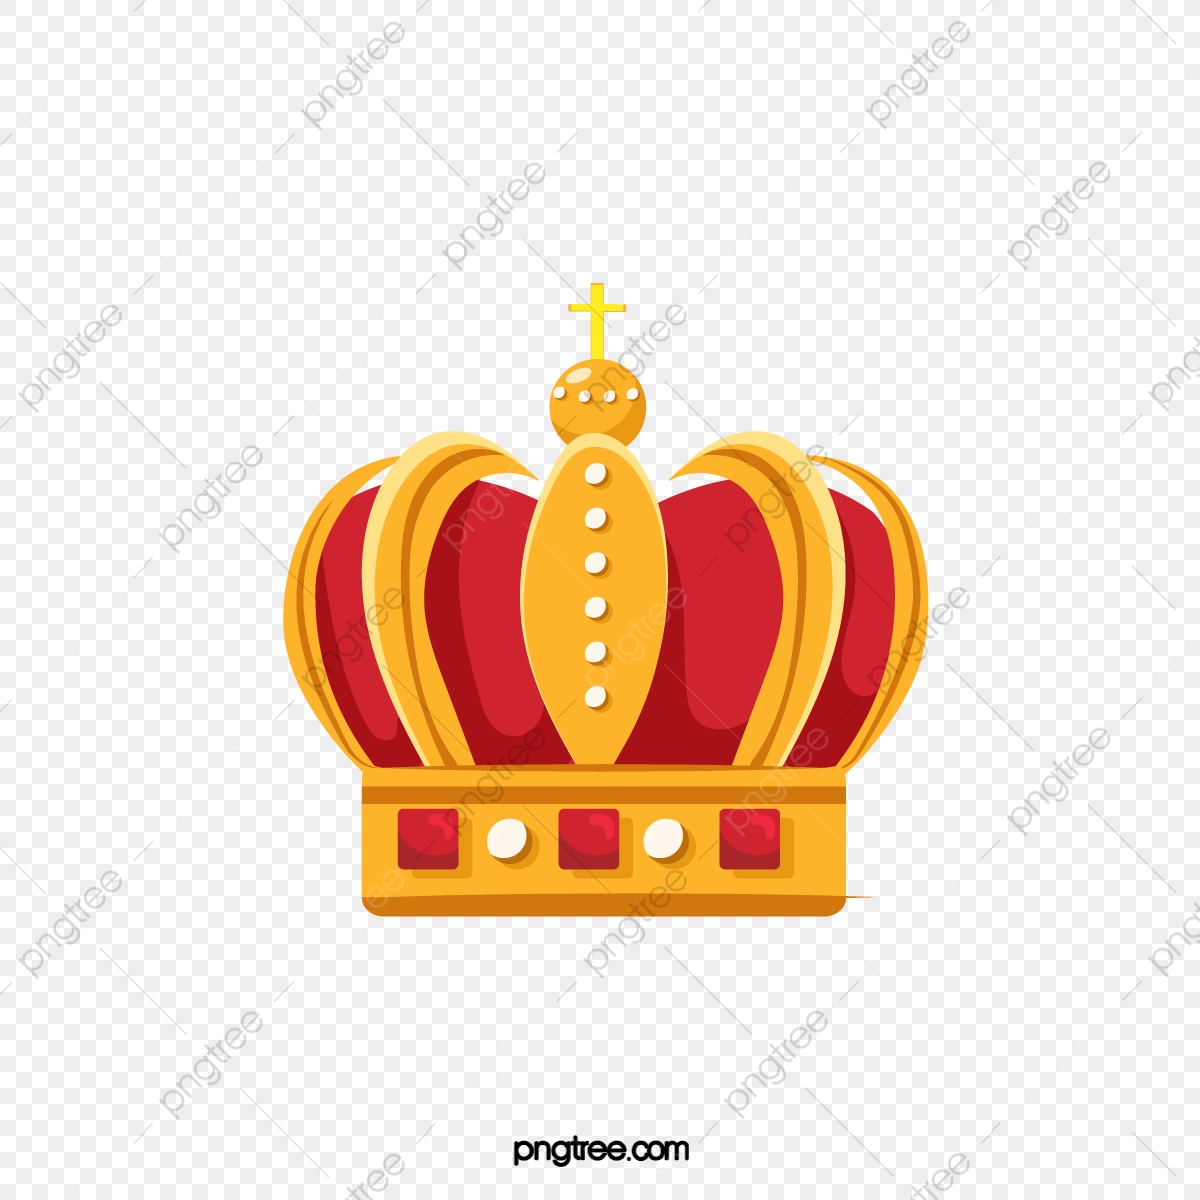 Cartoon King Crown Princess Crown Clipart Cartoon Crown King Png And Vector With Transparent Background For Free Download All png & cliparts images on nicepng are best quality. https pngtree com freepng cartoon king crown 3490965 html